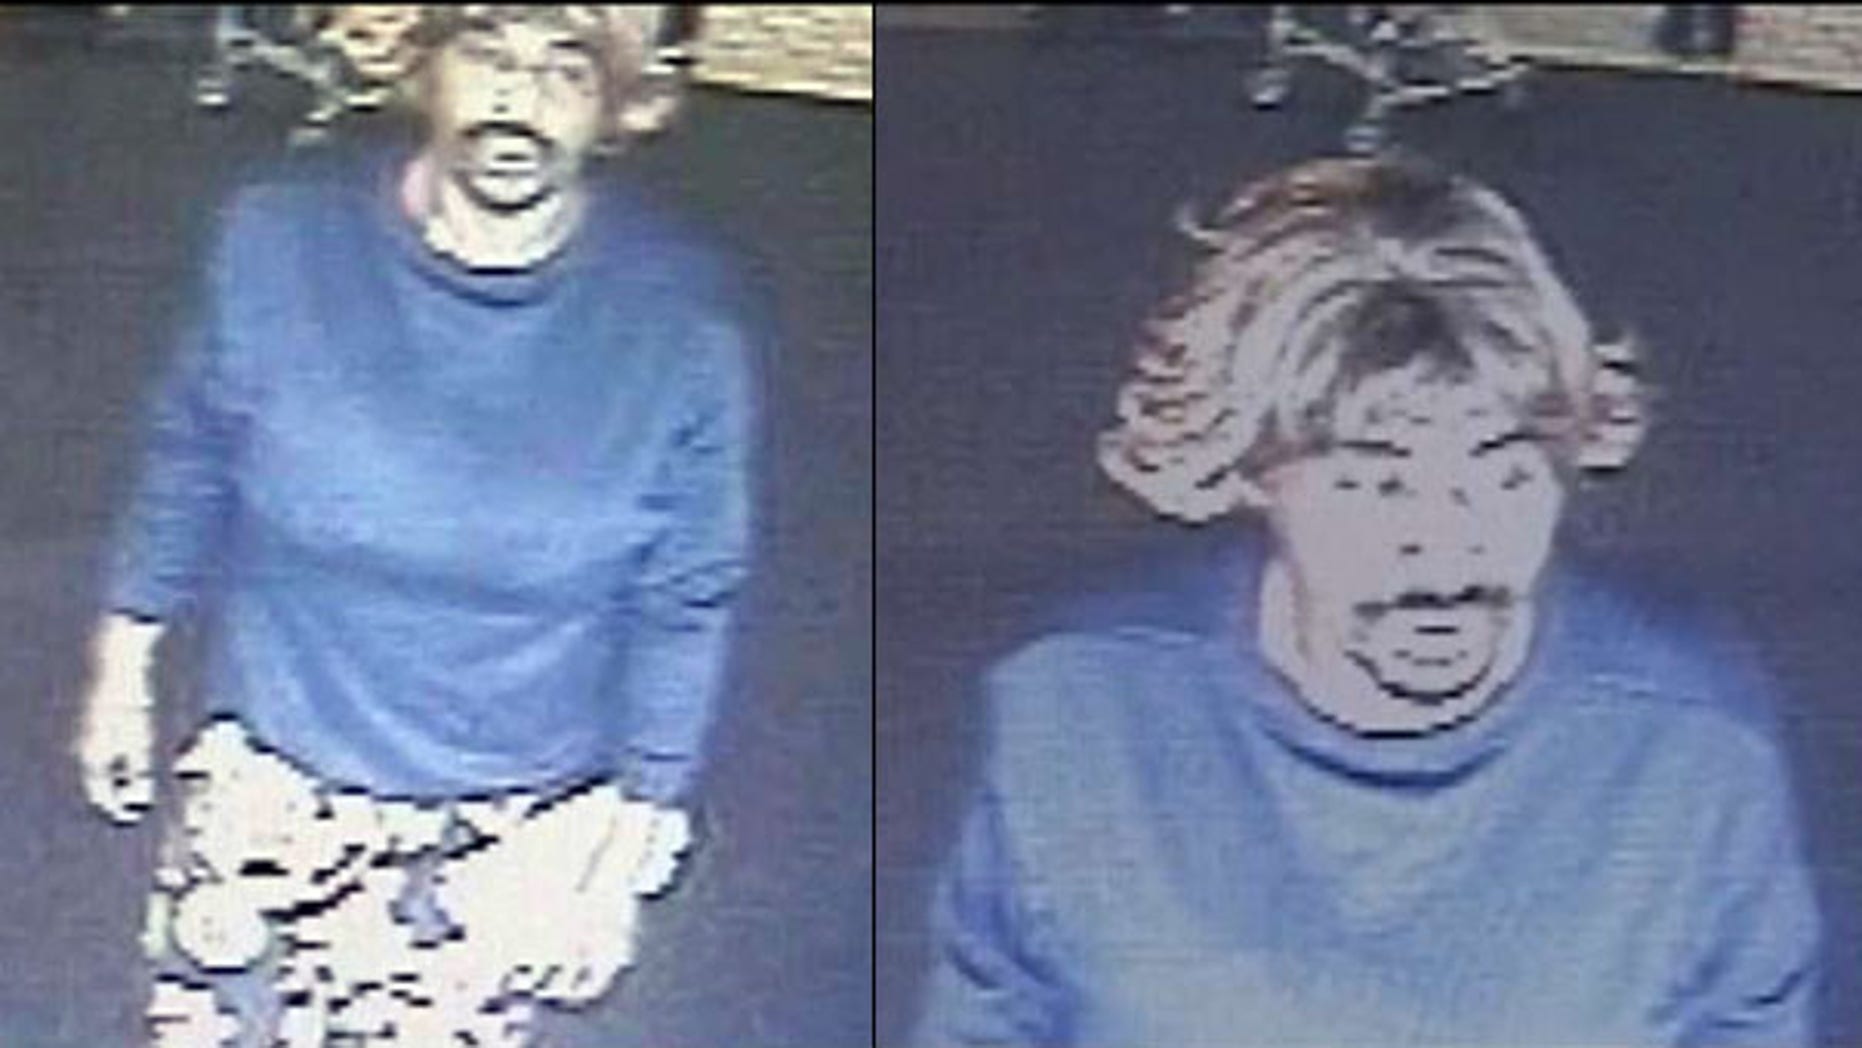 July 26: Security footage shows 48-year-old Dennis Hawkins wearing clown pants, fake breasts and a wig as he robs a Pennsylvania bank, police say.